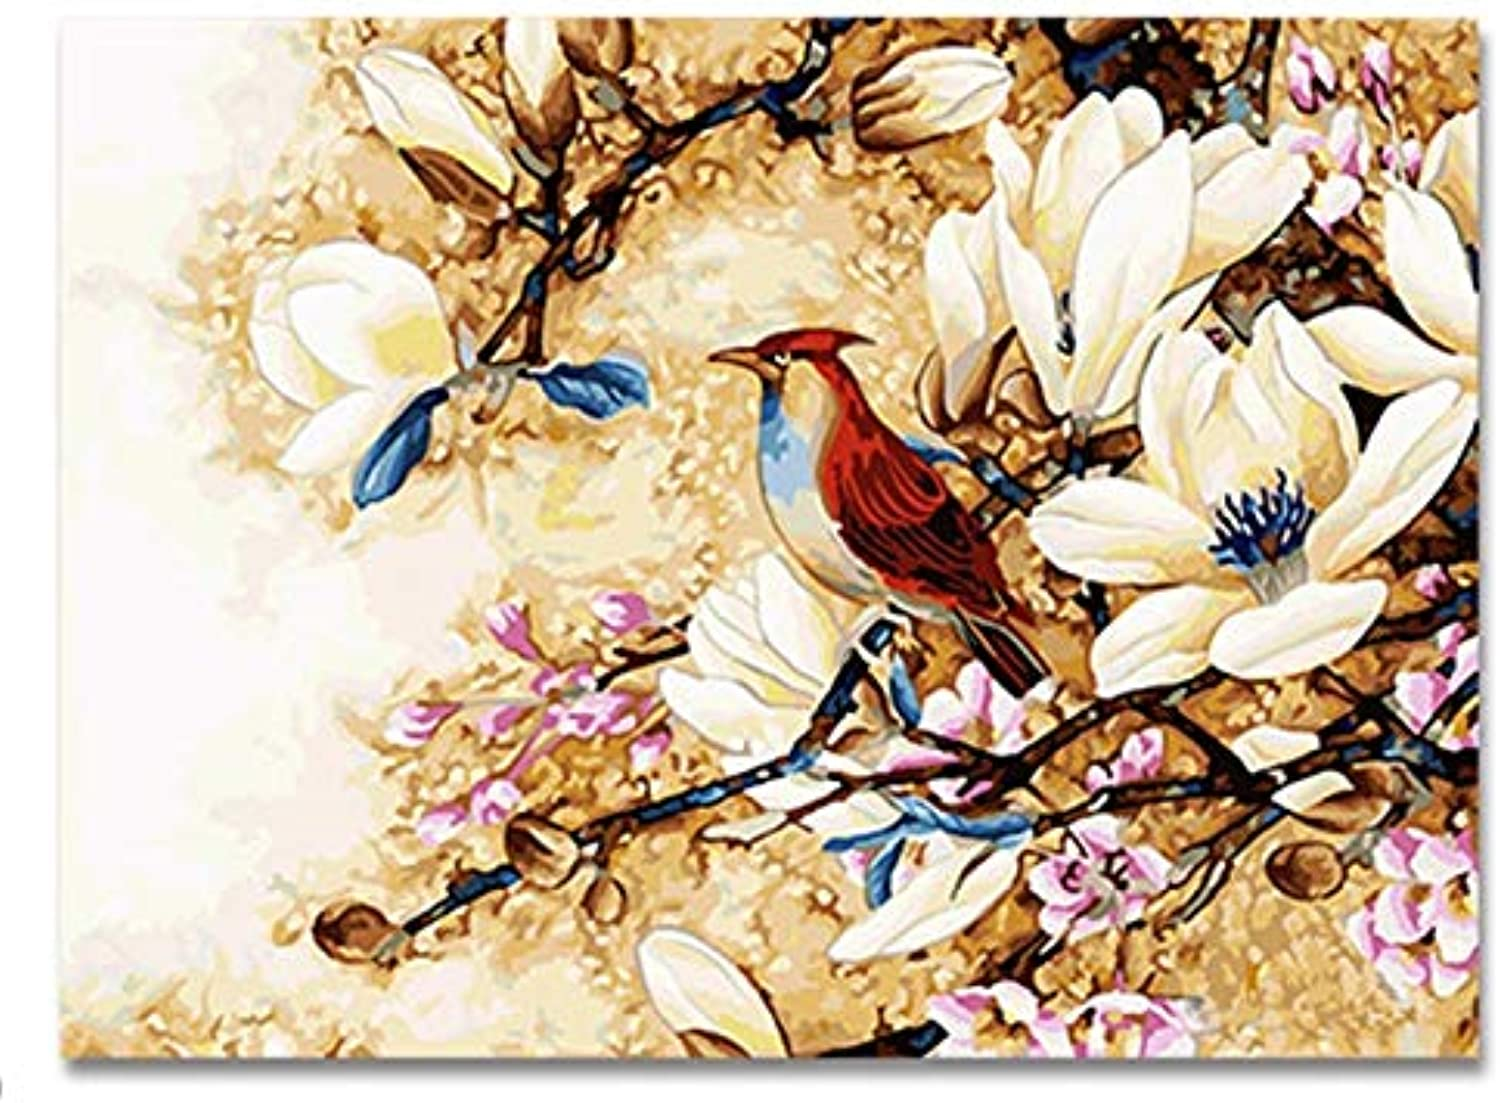 KYKDY New Digital DIY Oil Painting by Numbers Flowers and Birds Picture on Canvas Oil Paint coloring by Number Drawing,40x50cm